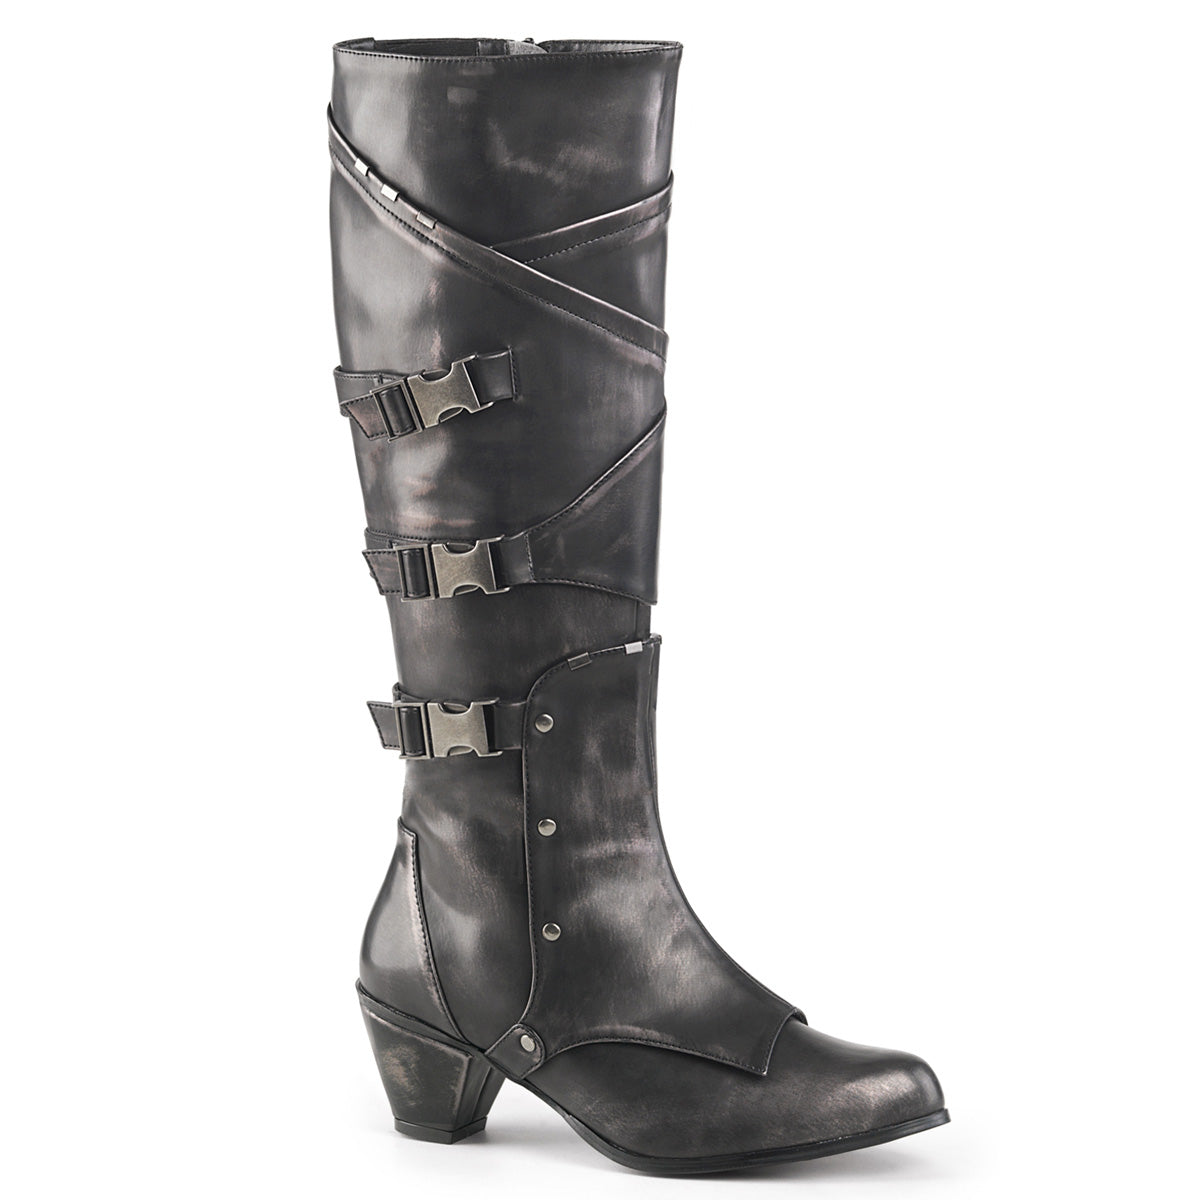 "2 1/2"" Block Heel Knee High Boot W/ Buckle Strap, Side Zip"